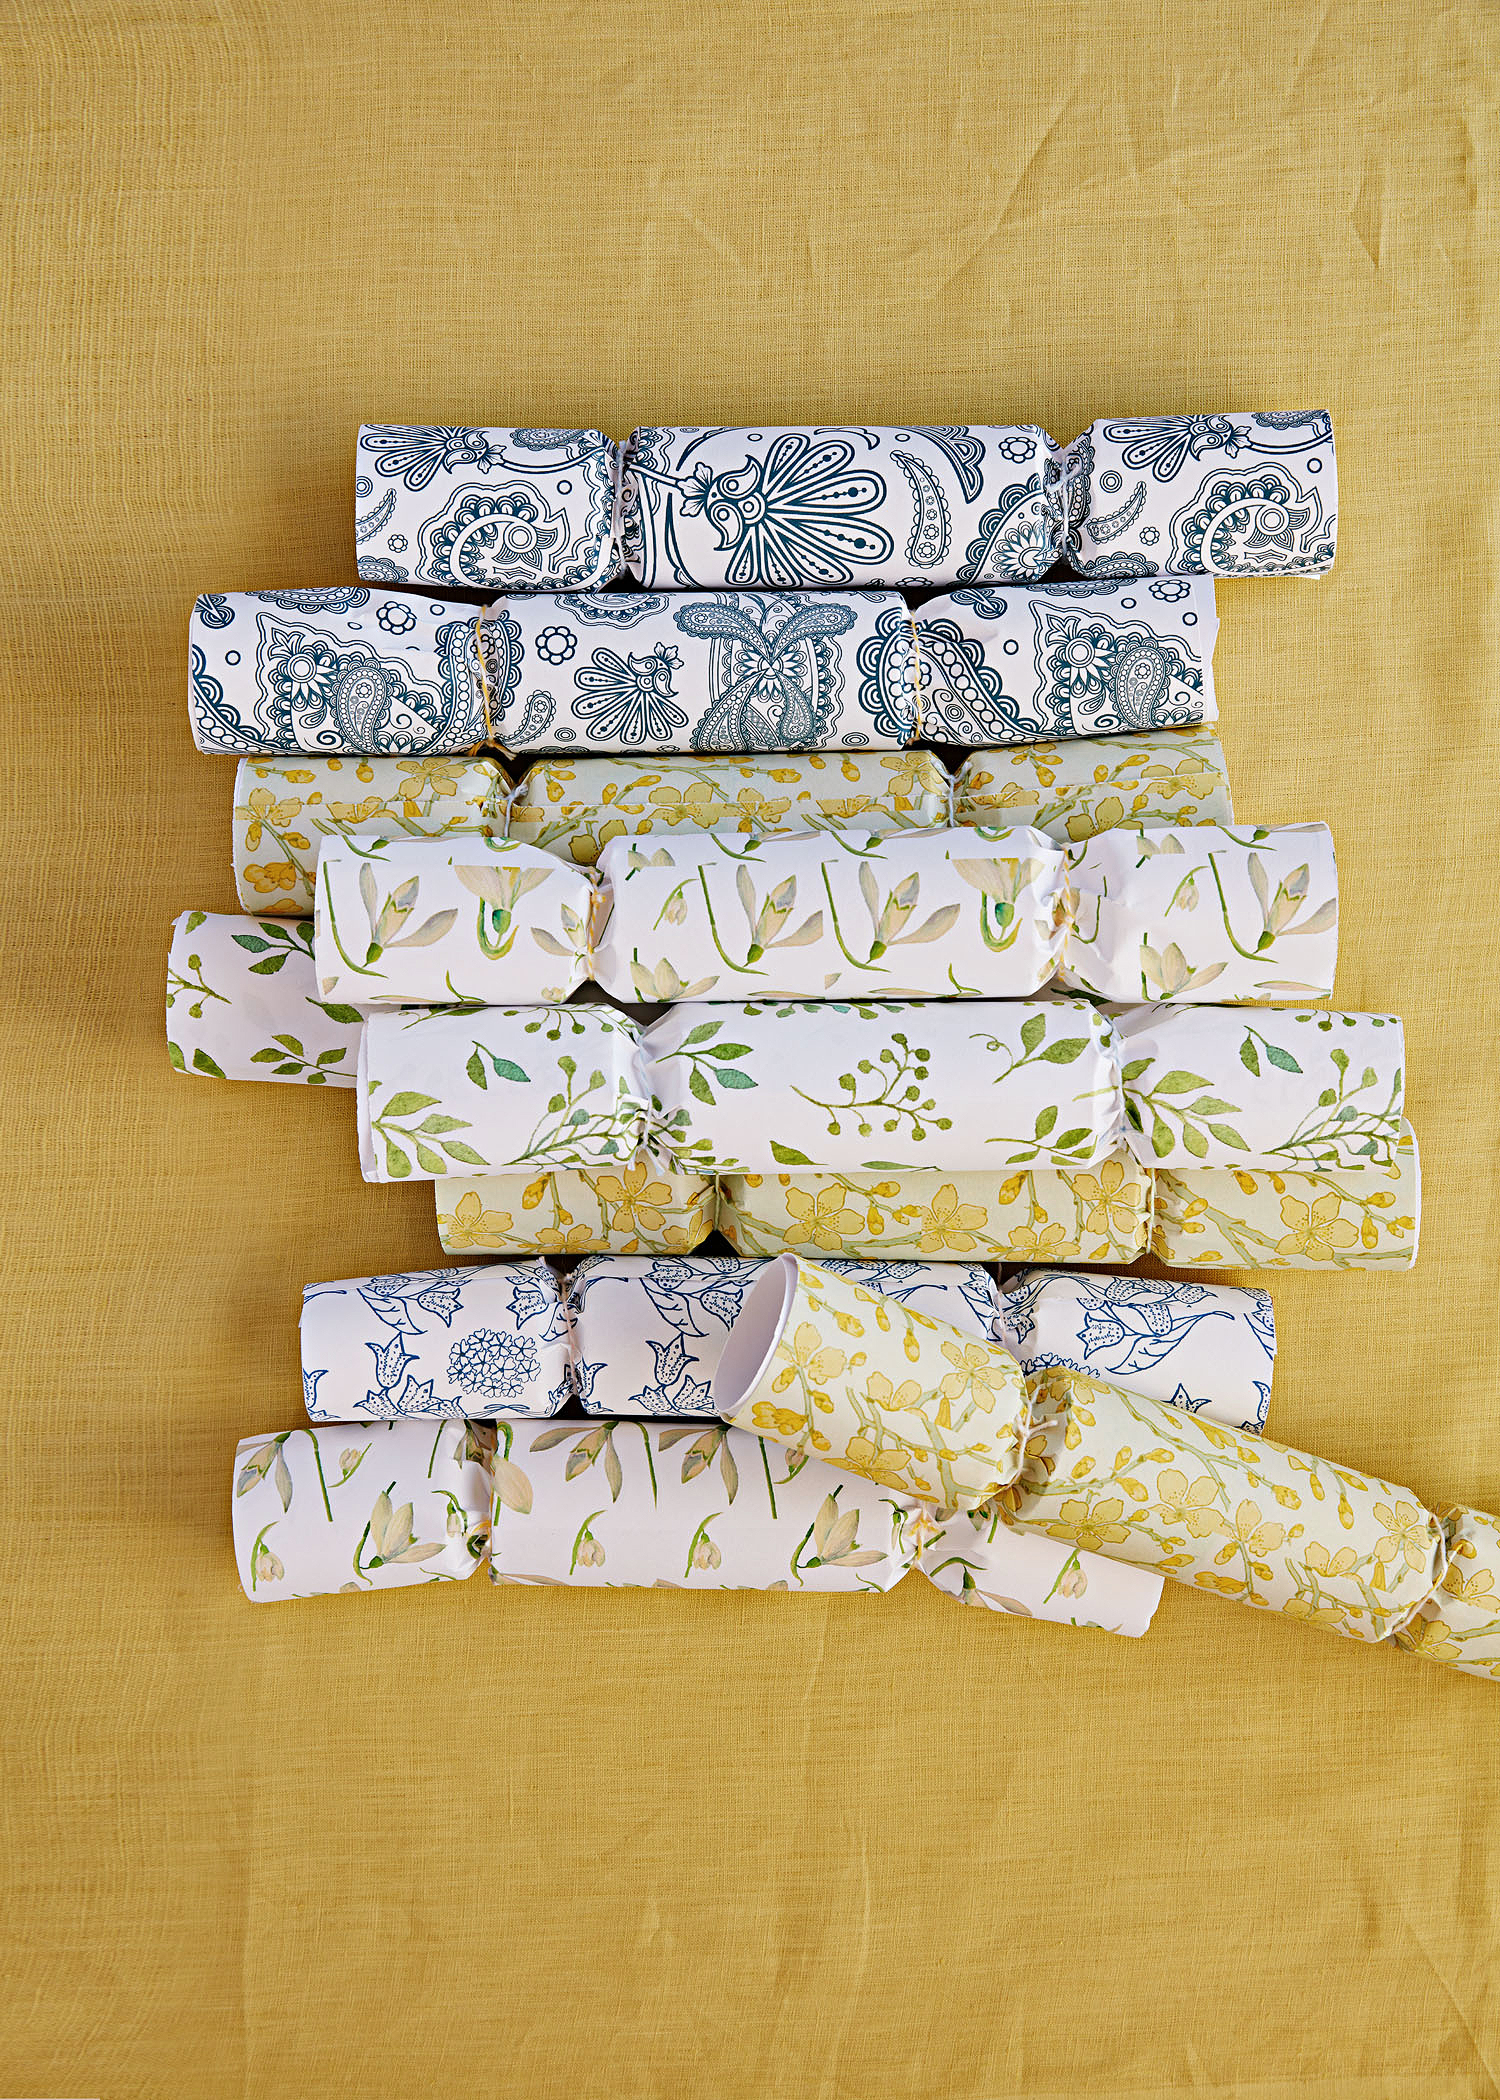 wrapped crackers